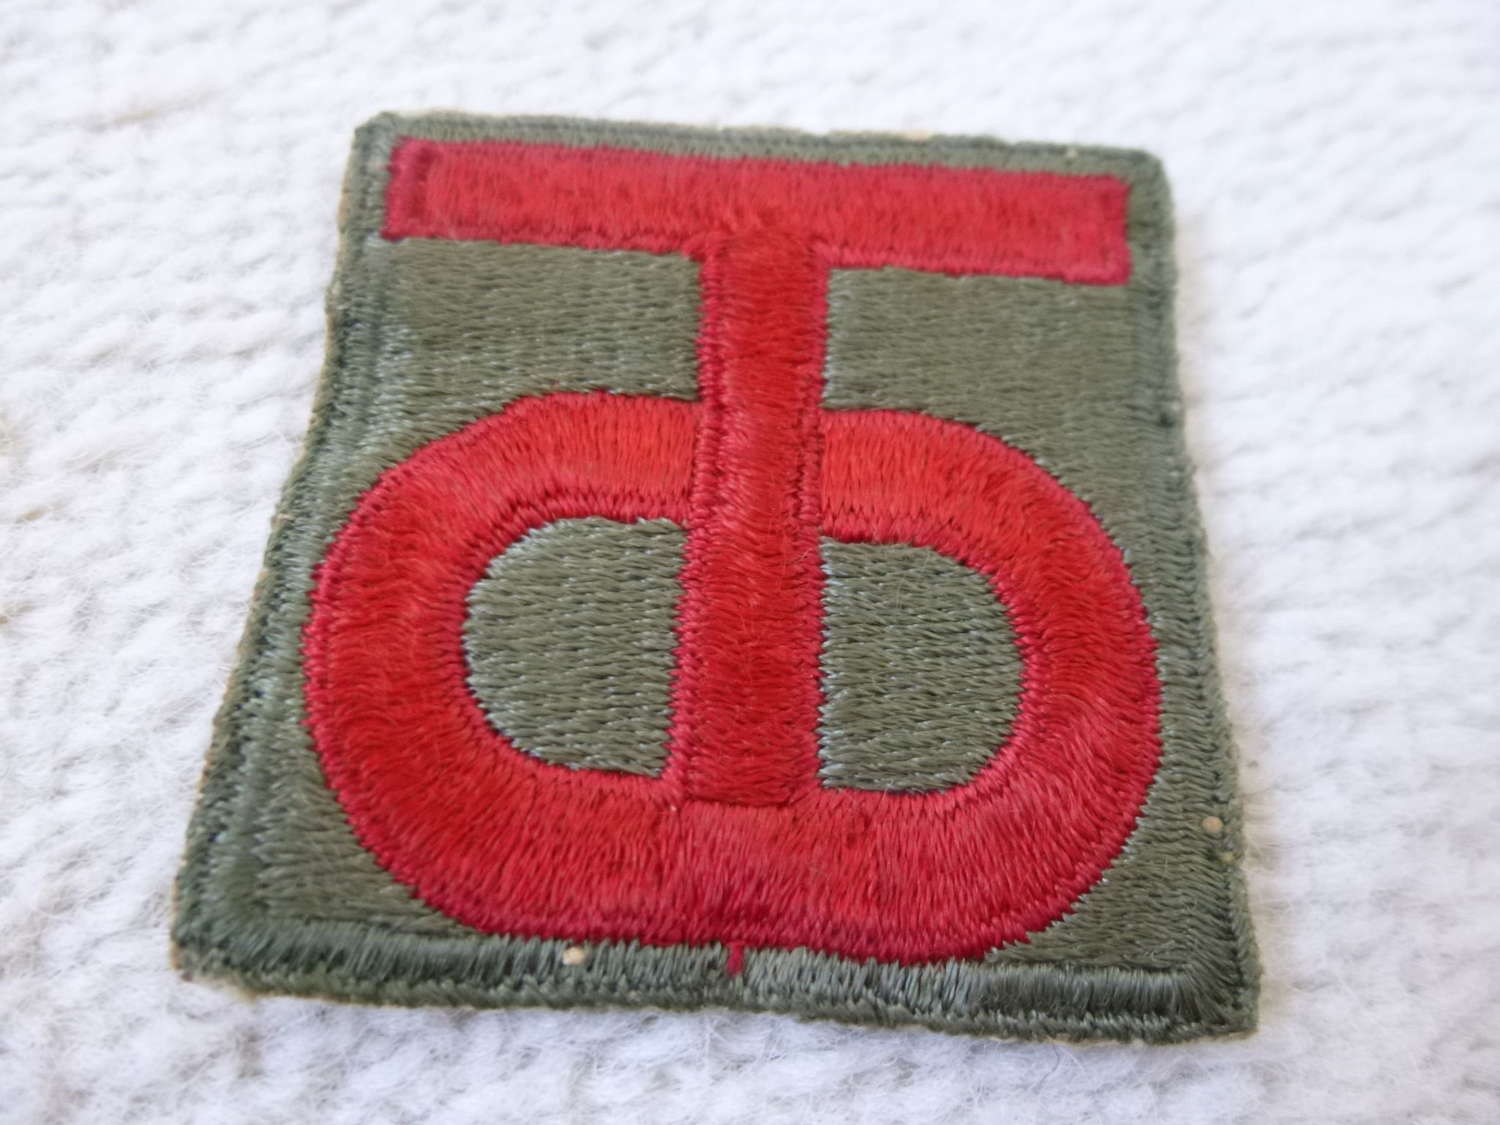 US army 90th division patch